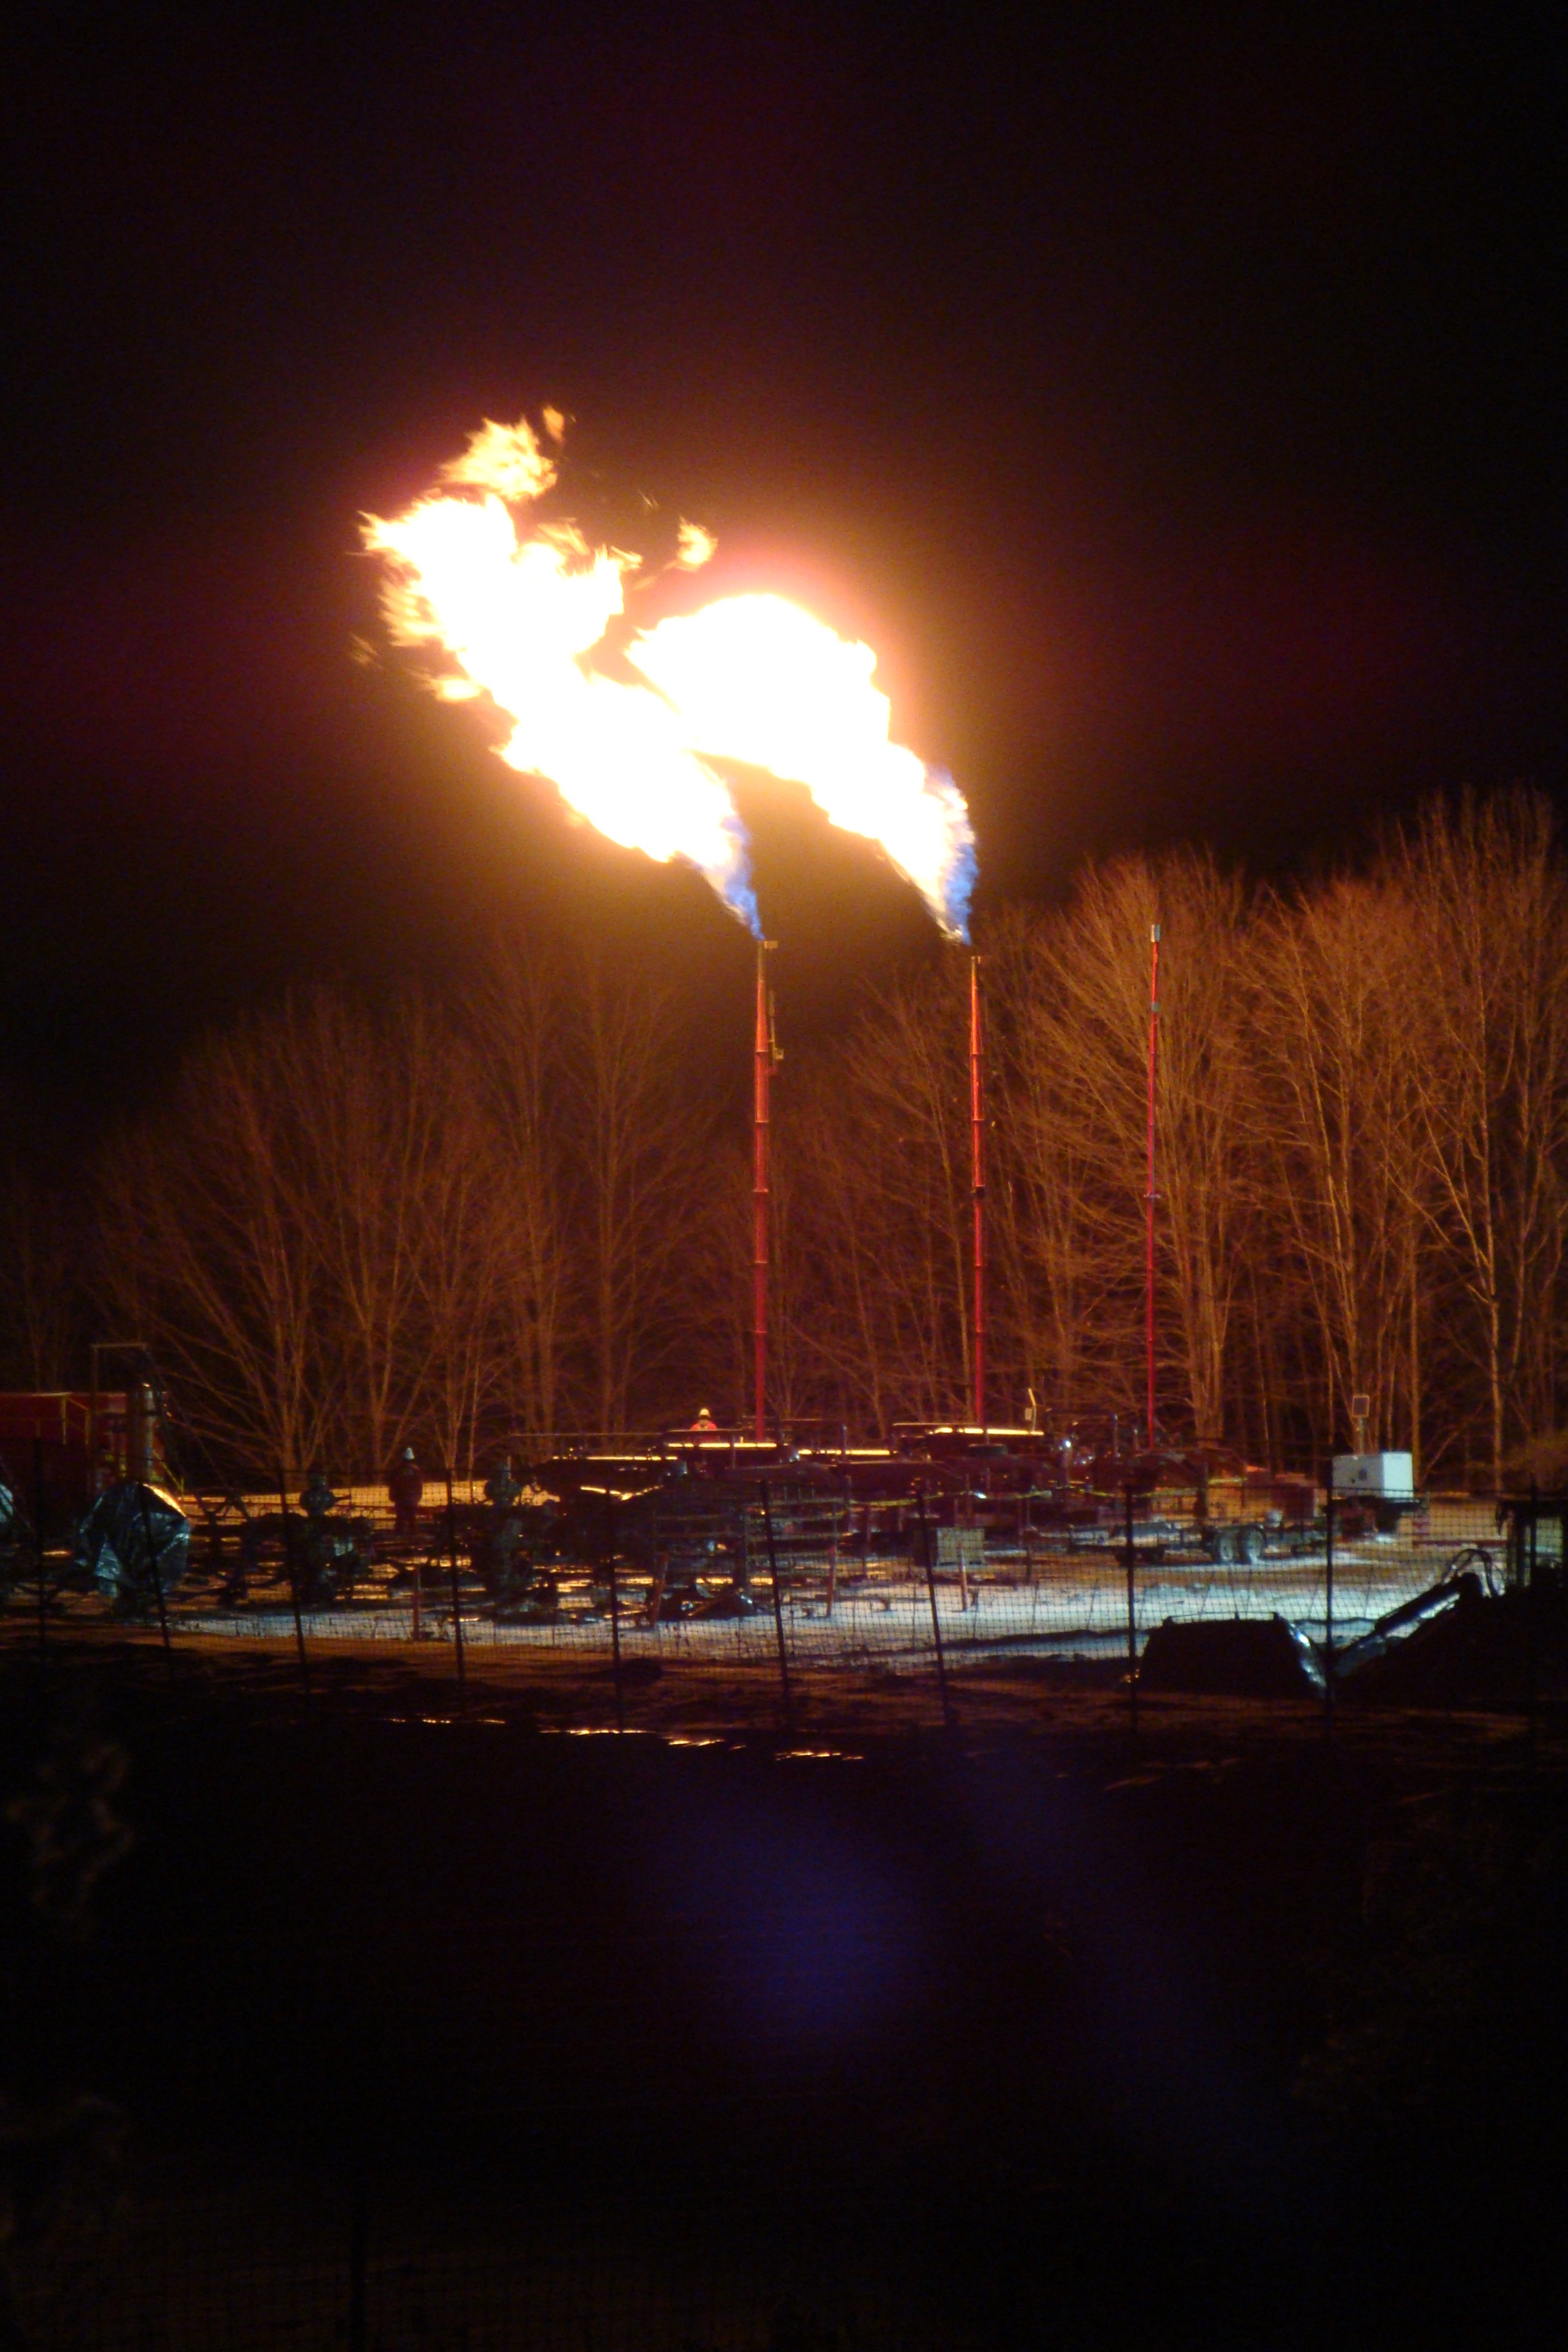 Gas flare at night.